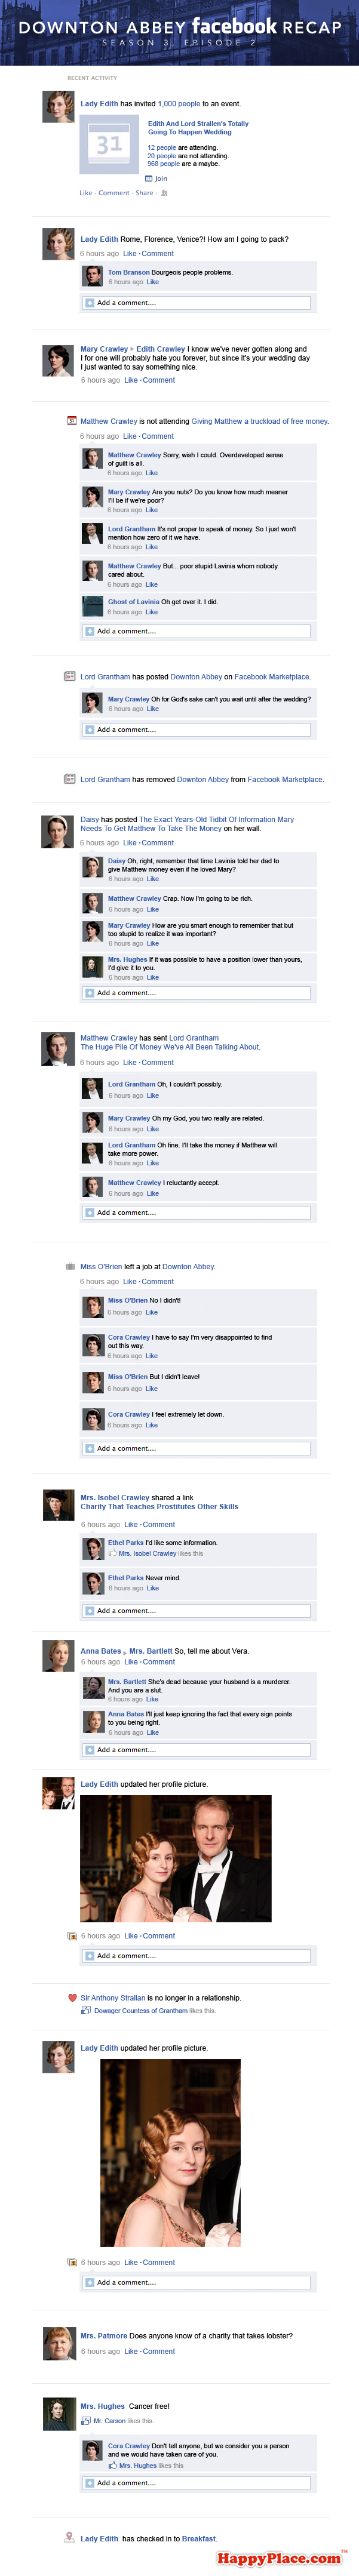 If Downton Abbey took place entirely on Facebook: Season 3, Episode 2.